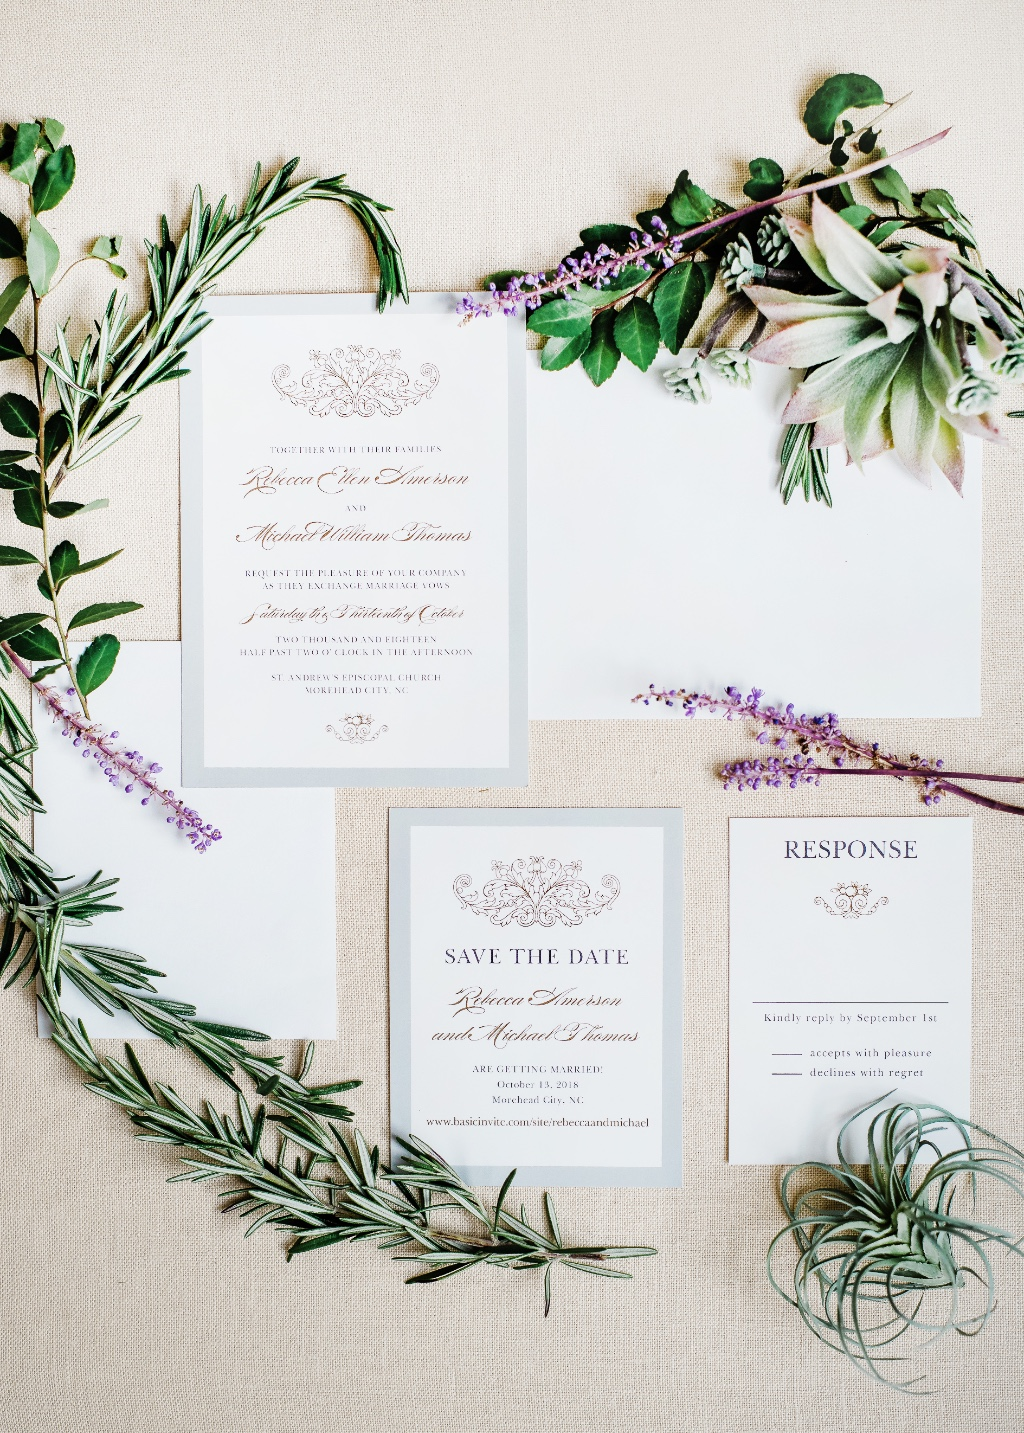 All your fairy tale wedding dreams will come true with this dreamy Vintage Damask Wedding Invitation Suite.